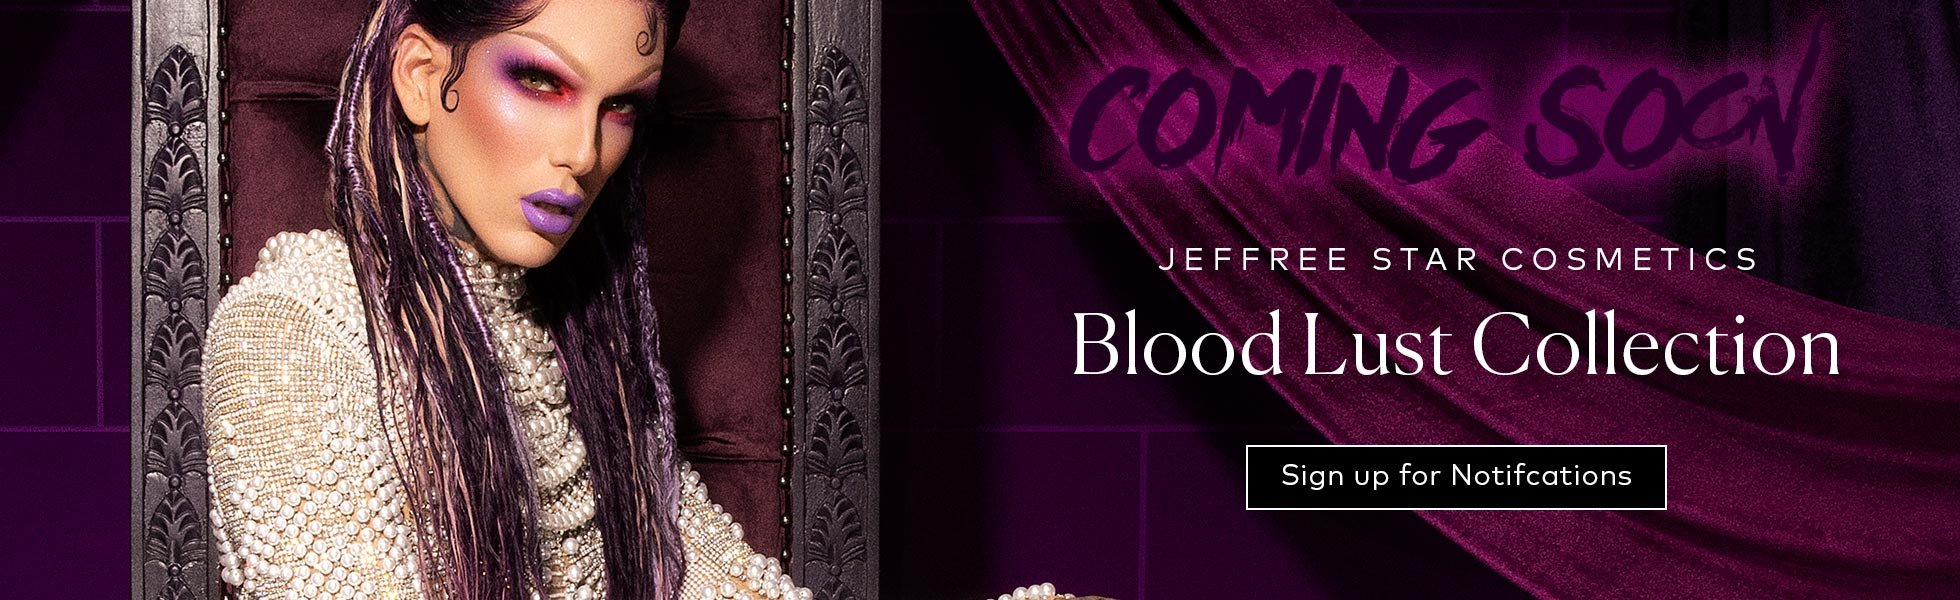 Jeffree Star Cosmetics Blood Lust Collection coming soon to Beautylish. Click to sign up for notifications!